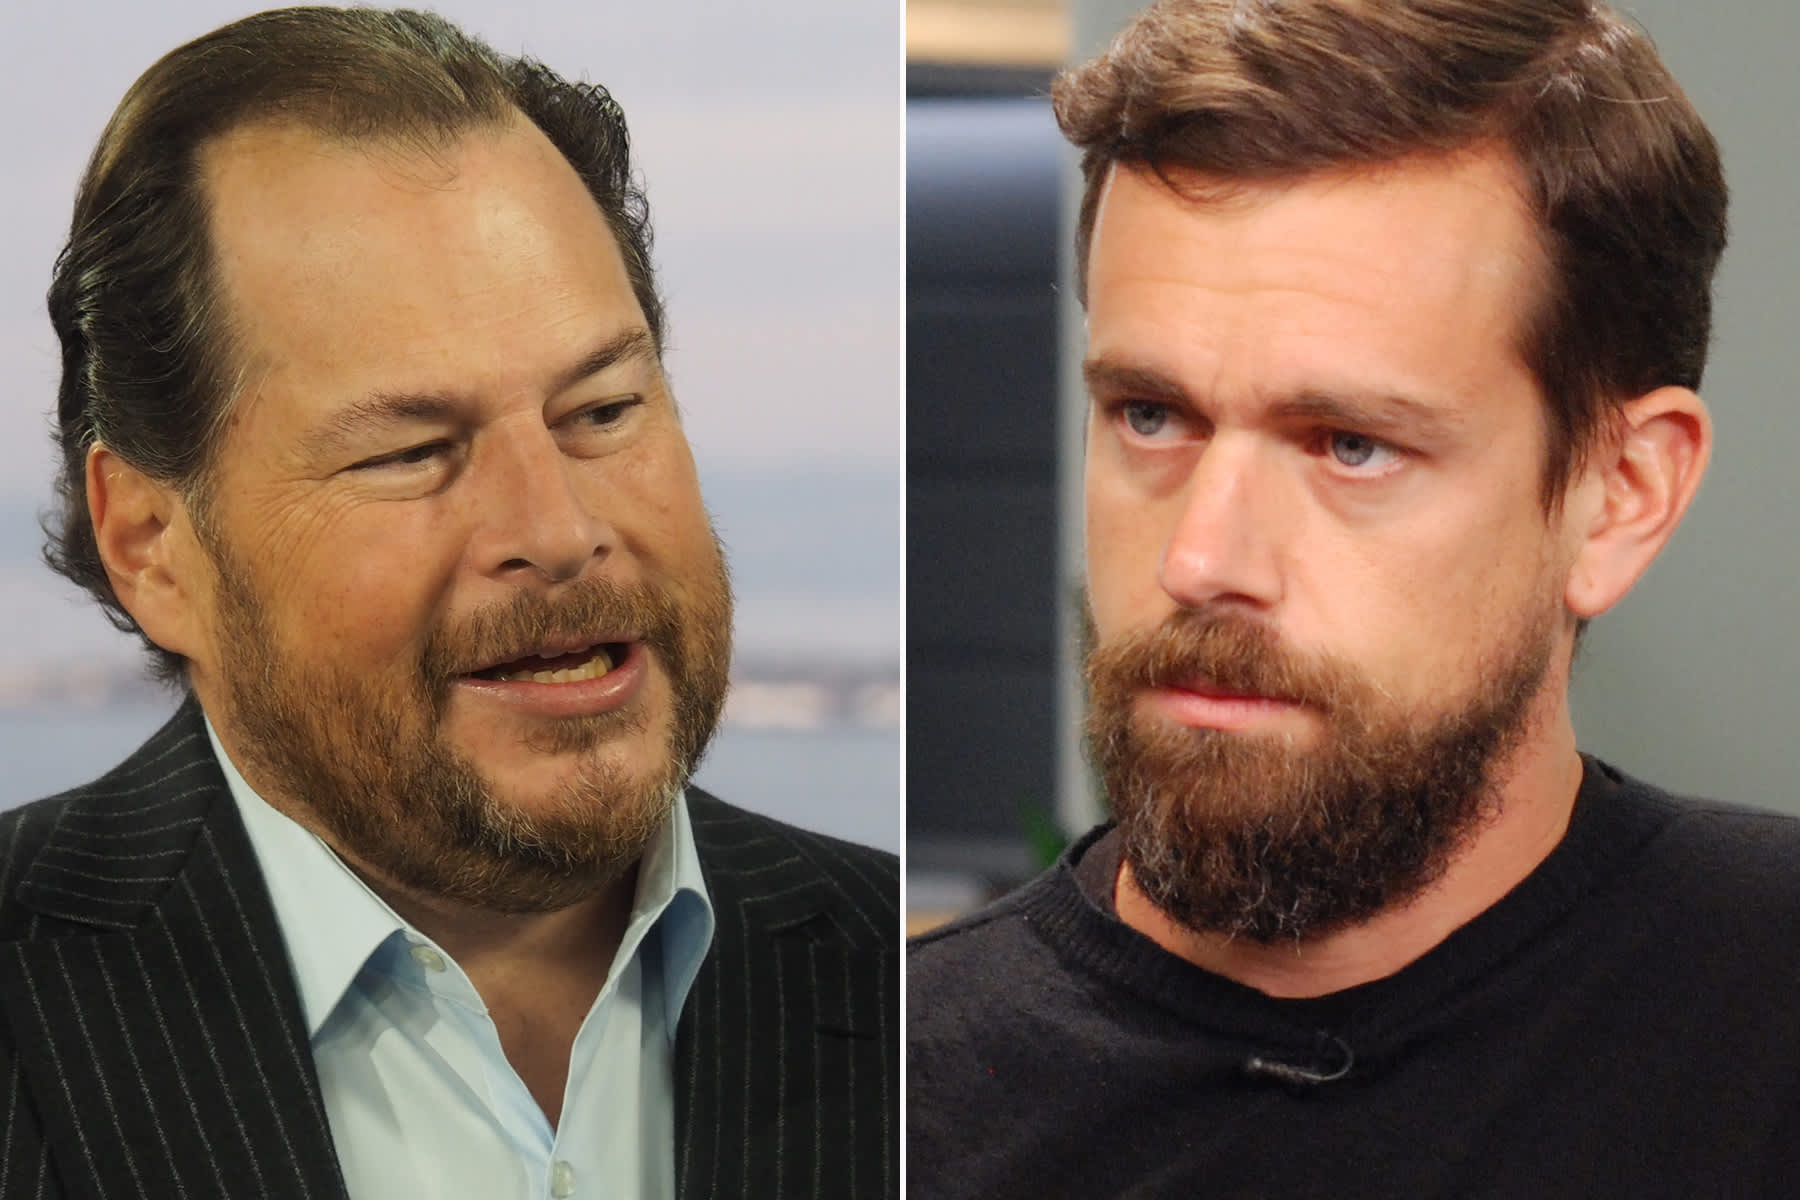 Marc Benioff was pushing for Salesforce to buy Twitter — until an accident changed his mind